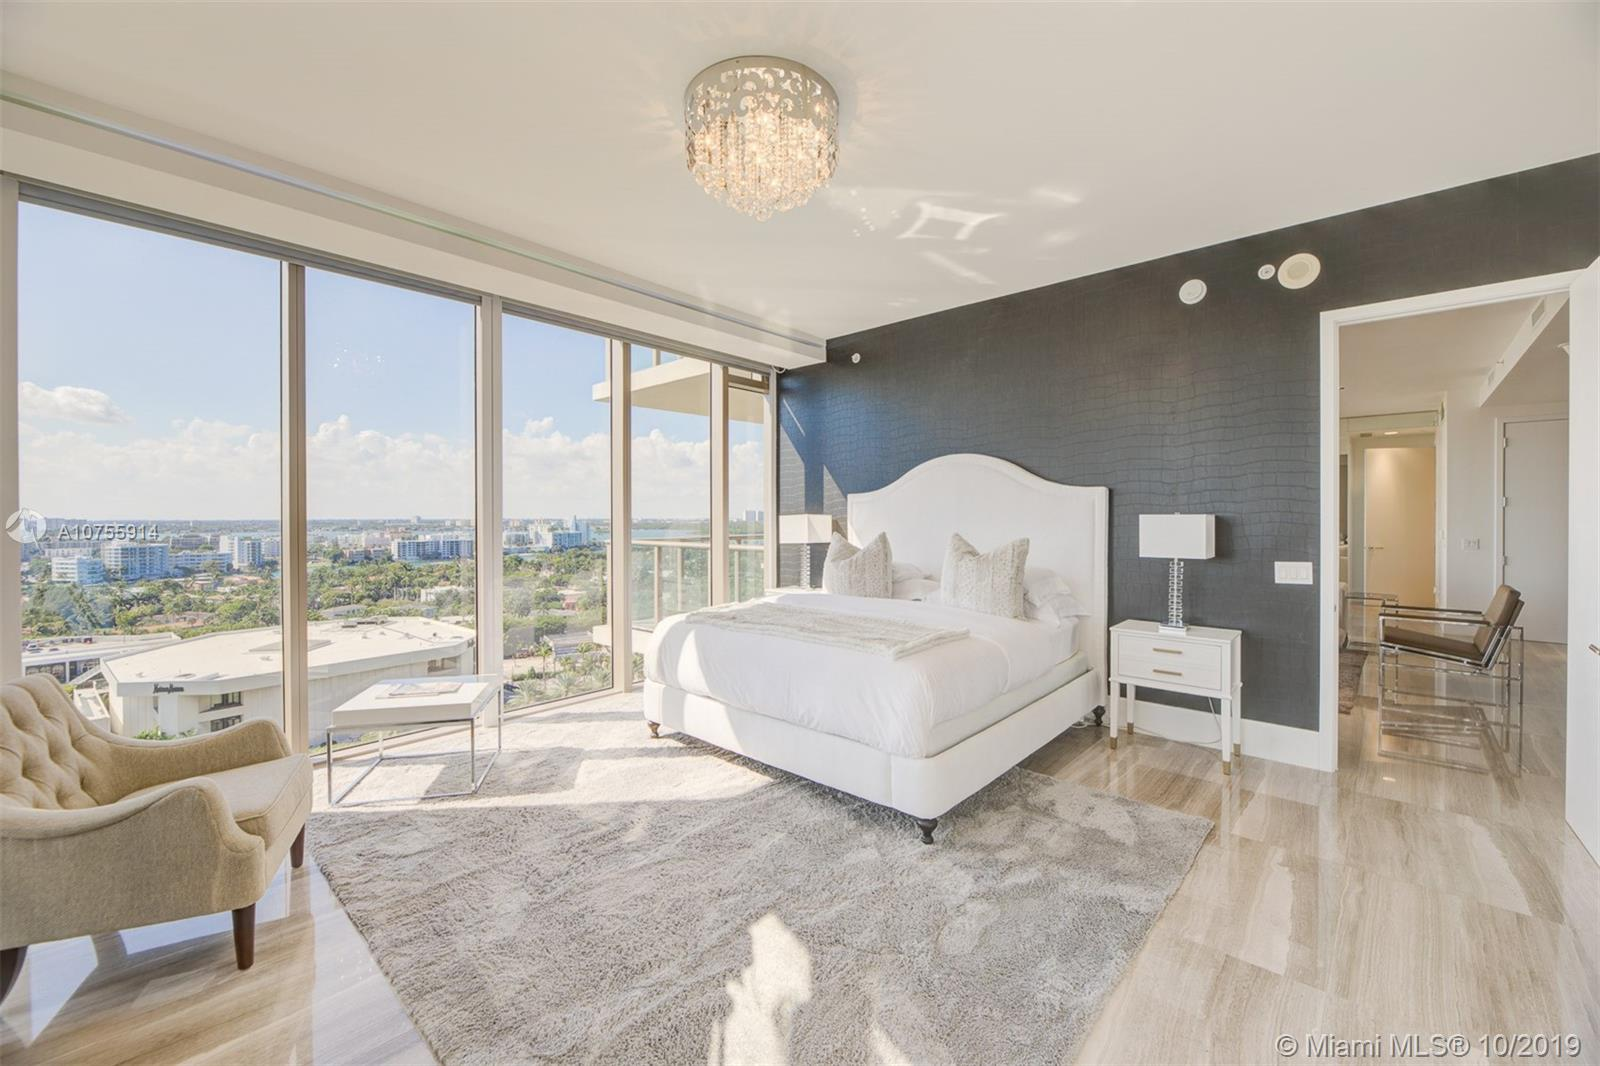 9705 Collins Ave #1405N, Bal Harbour FL 33154